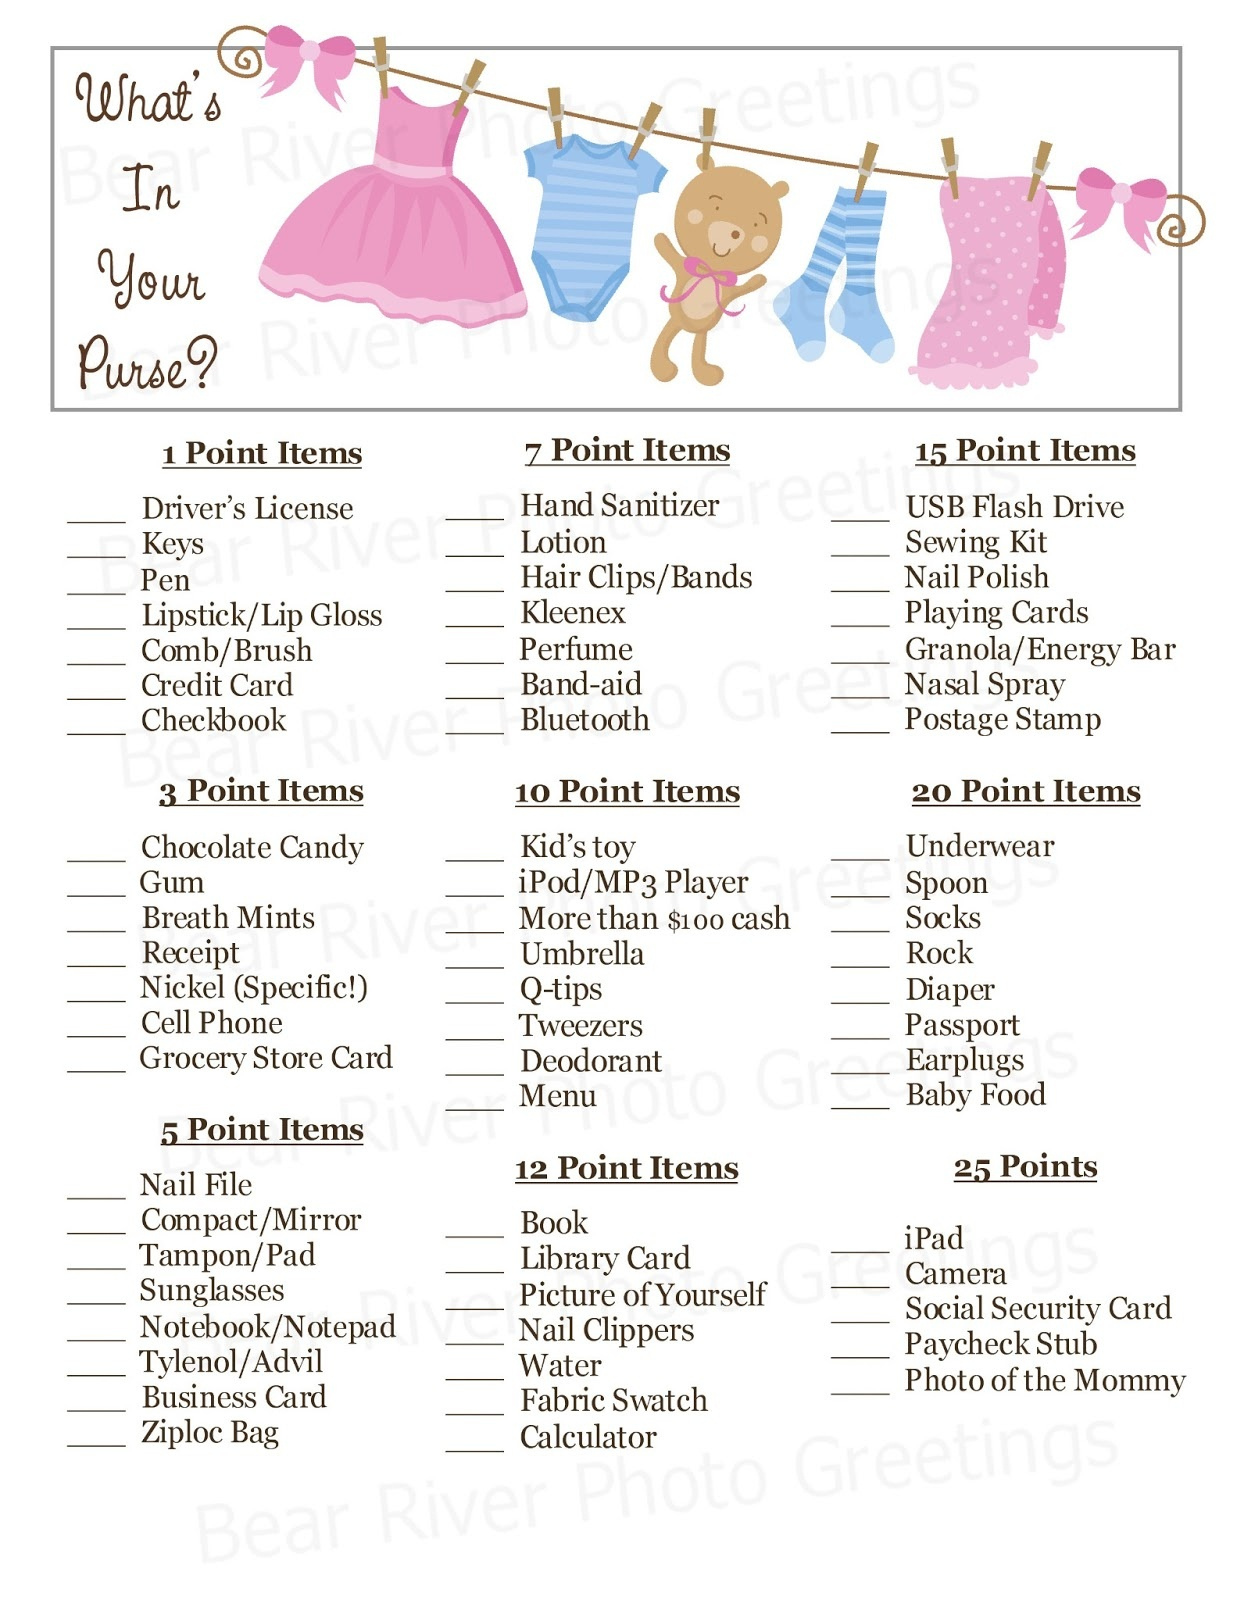 Bear River Photo Greetings: New! Instant Download Baby Shower Games - Free Printable Baby Shower Game What's In Your Purse